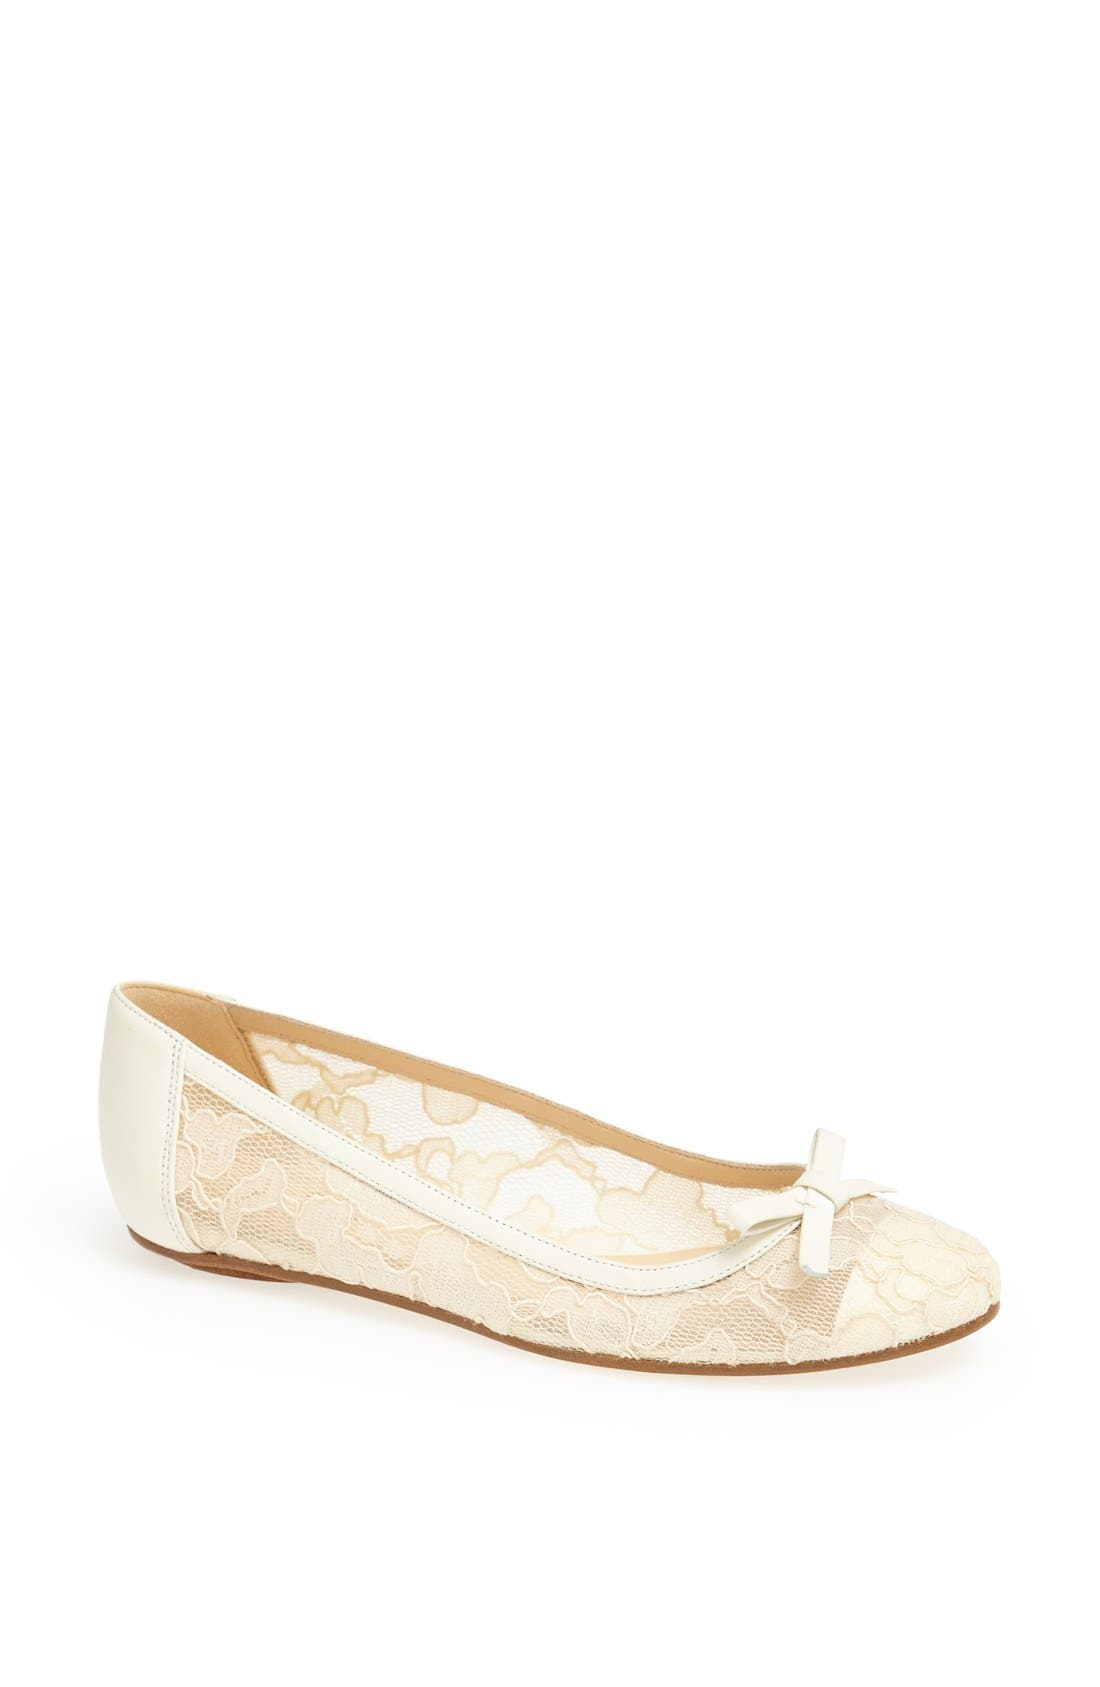 Alternate Image 1 Selected - kate spade new york 'banner' lace & leather flat